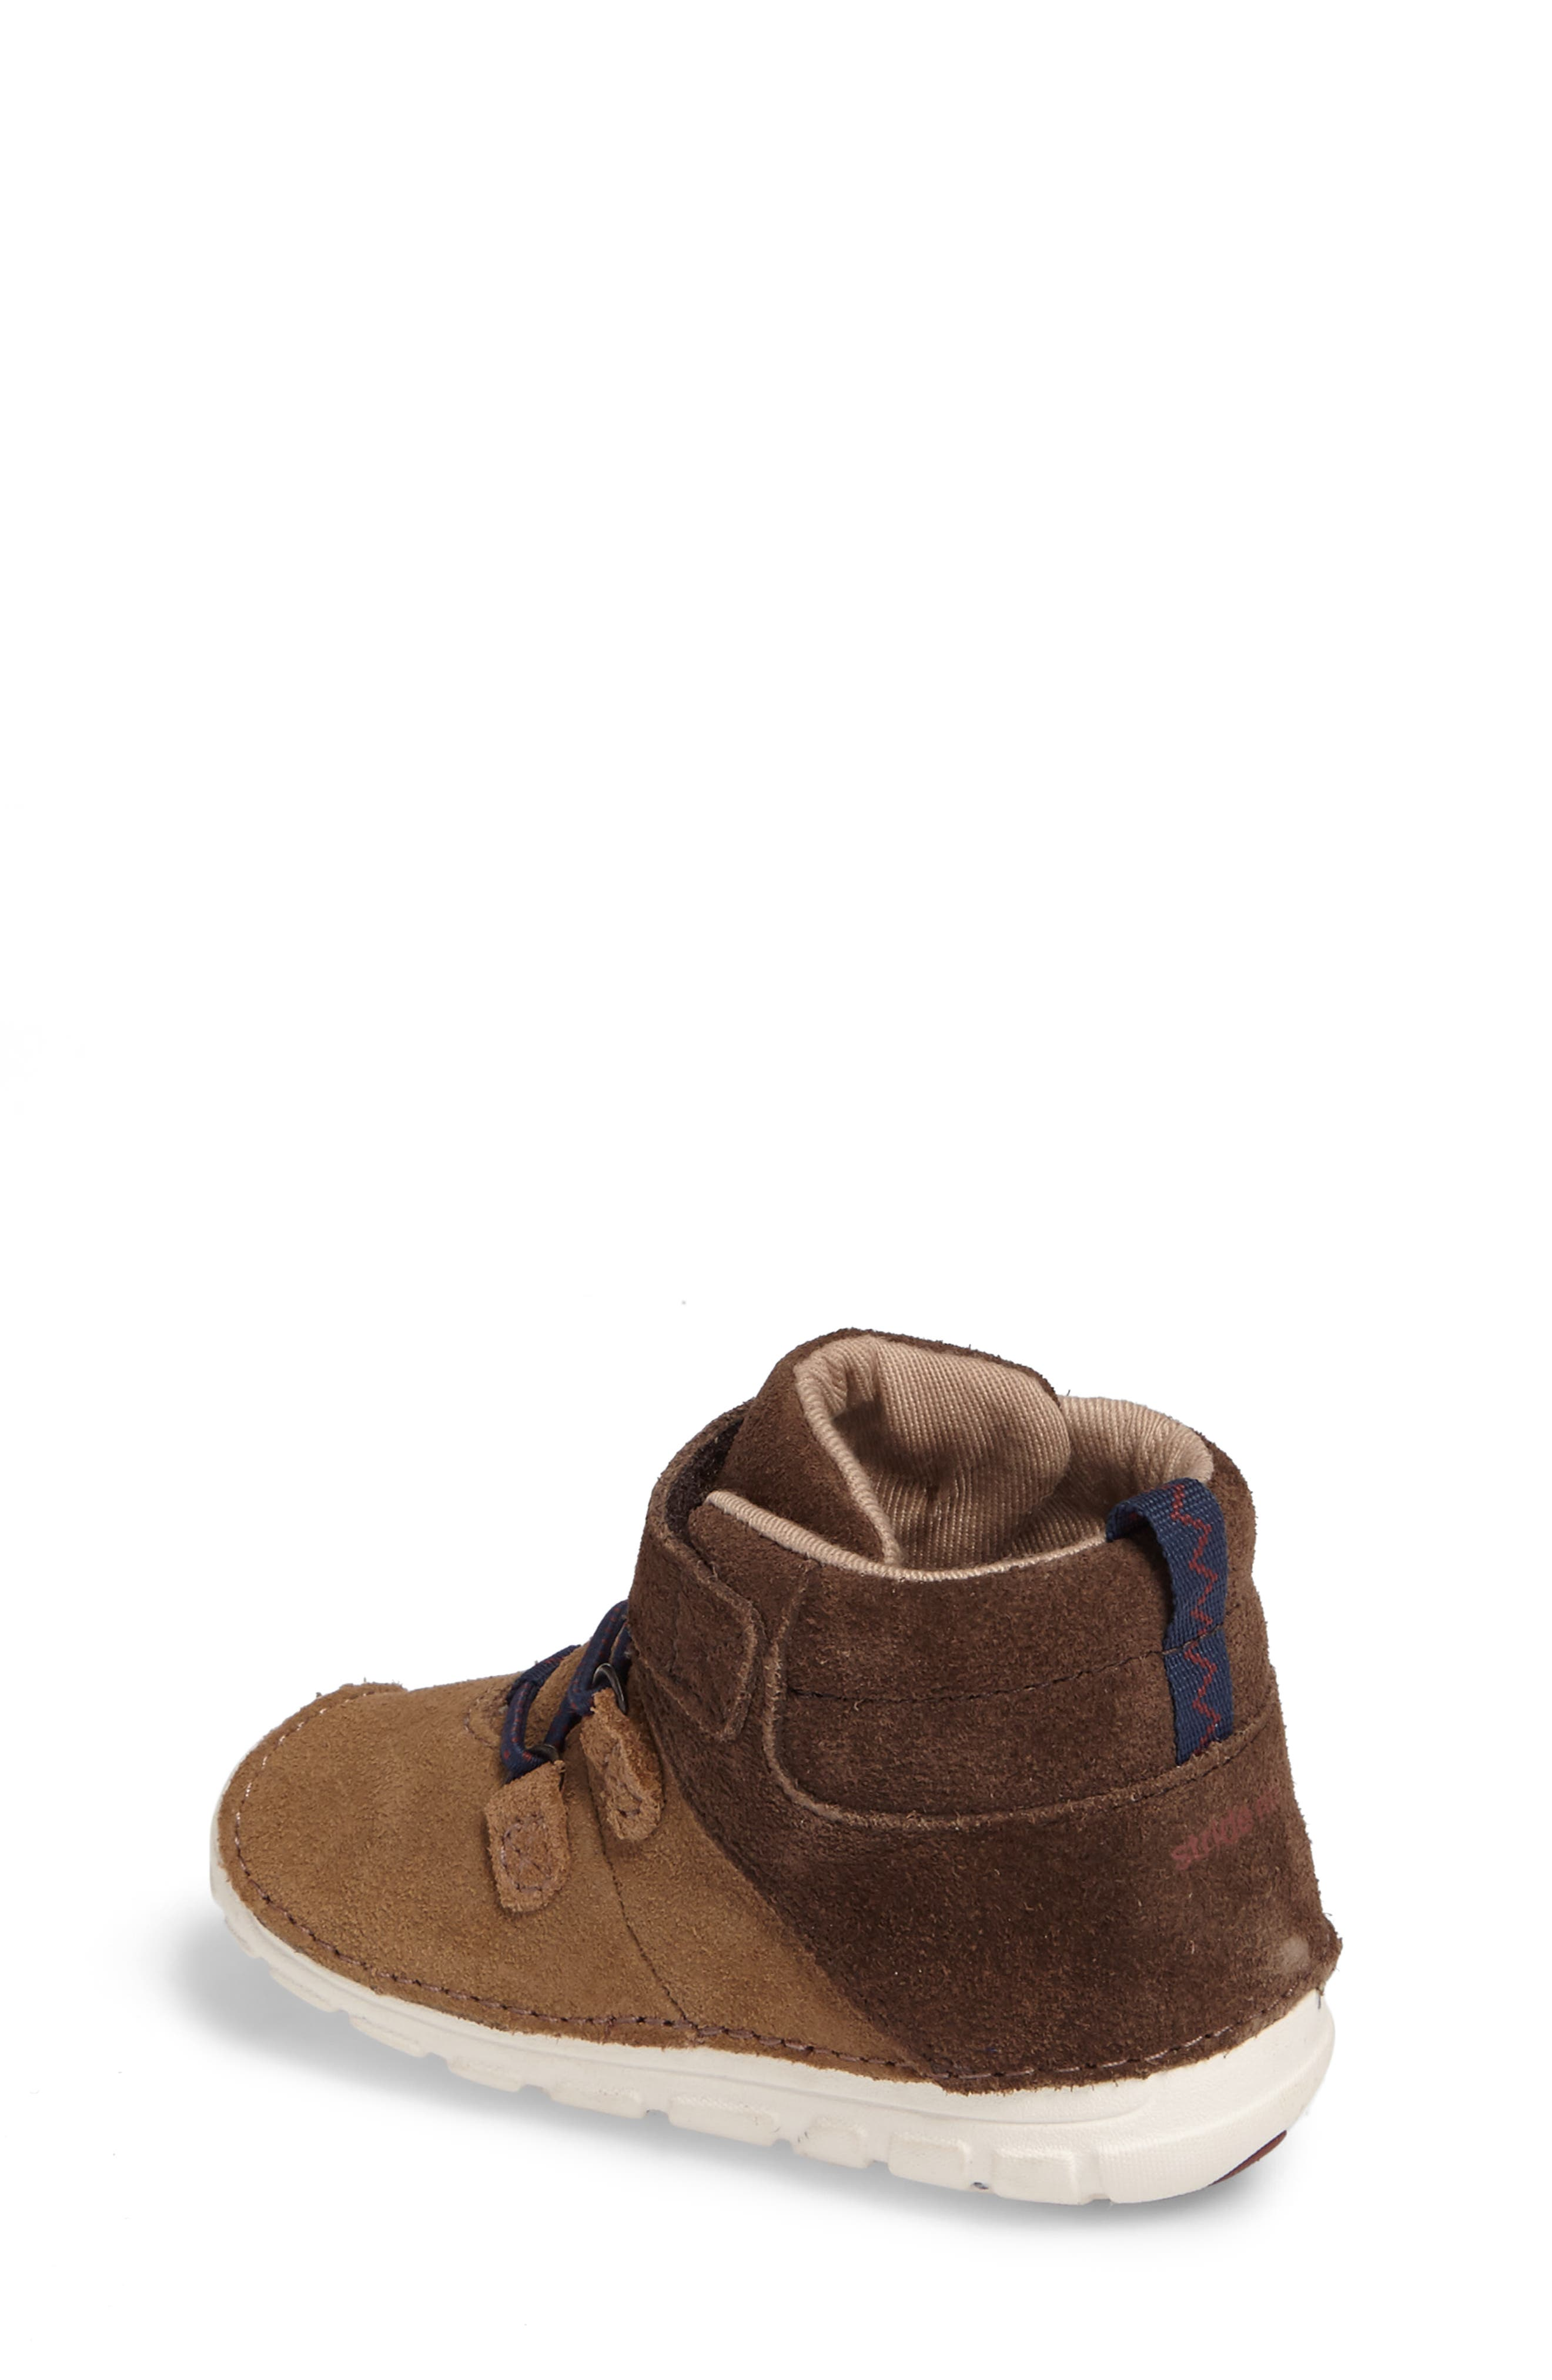 Soft Motion<sup>™</sup> Oliver High Top Sneaker,                             Alternate thumbnail 2, color,                             BROWN SUEDE